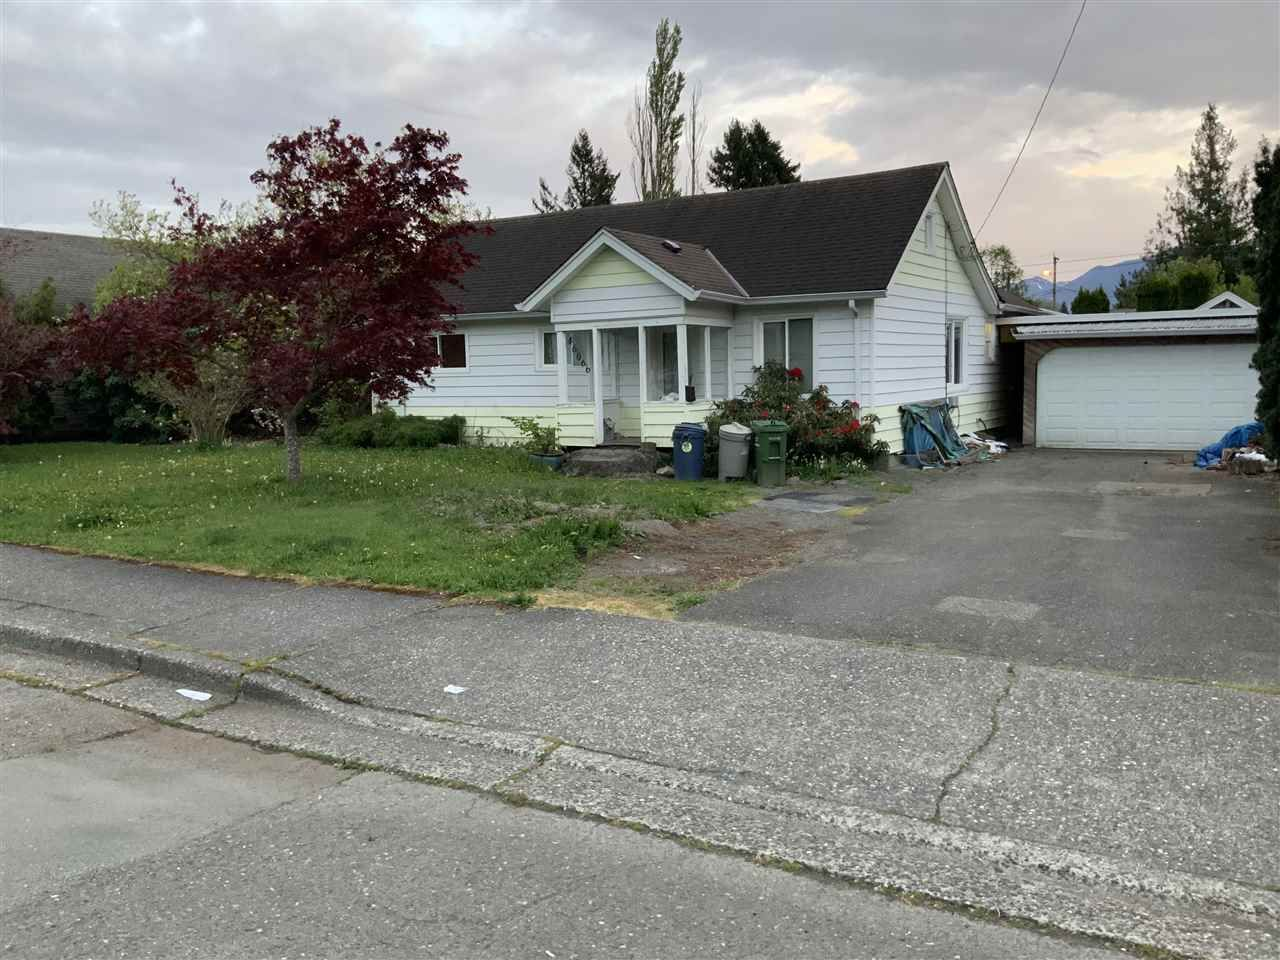 Main Photo: 46066 SECOND Avenue in Chilliwack: Chilliwack E Young-Yale House for sale : MLS®# R2452536